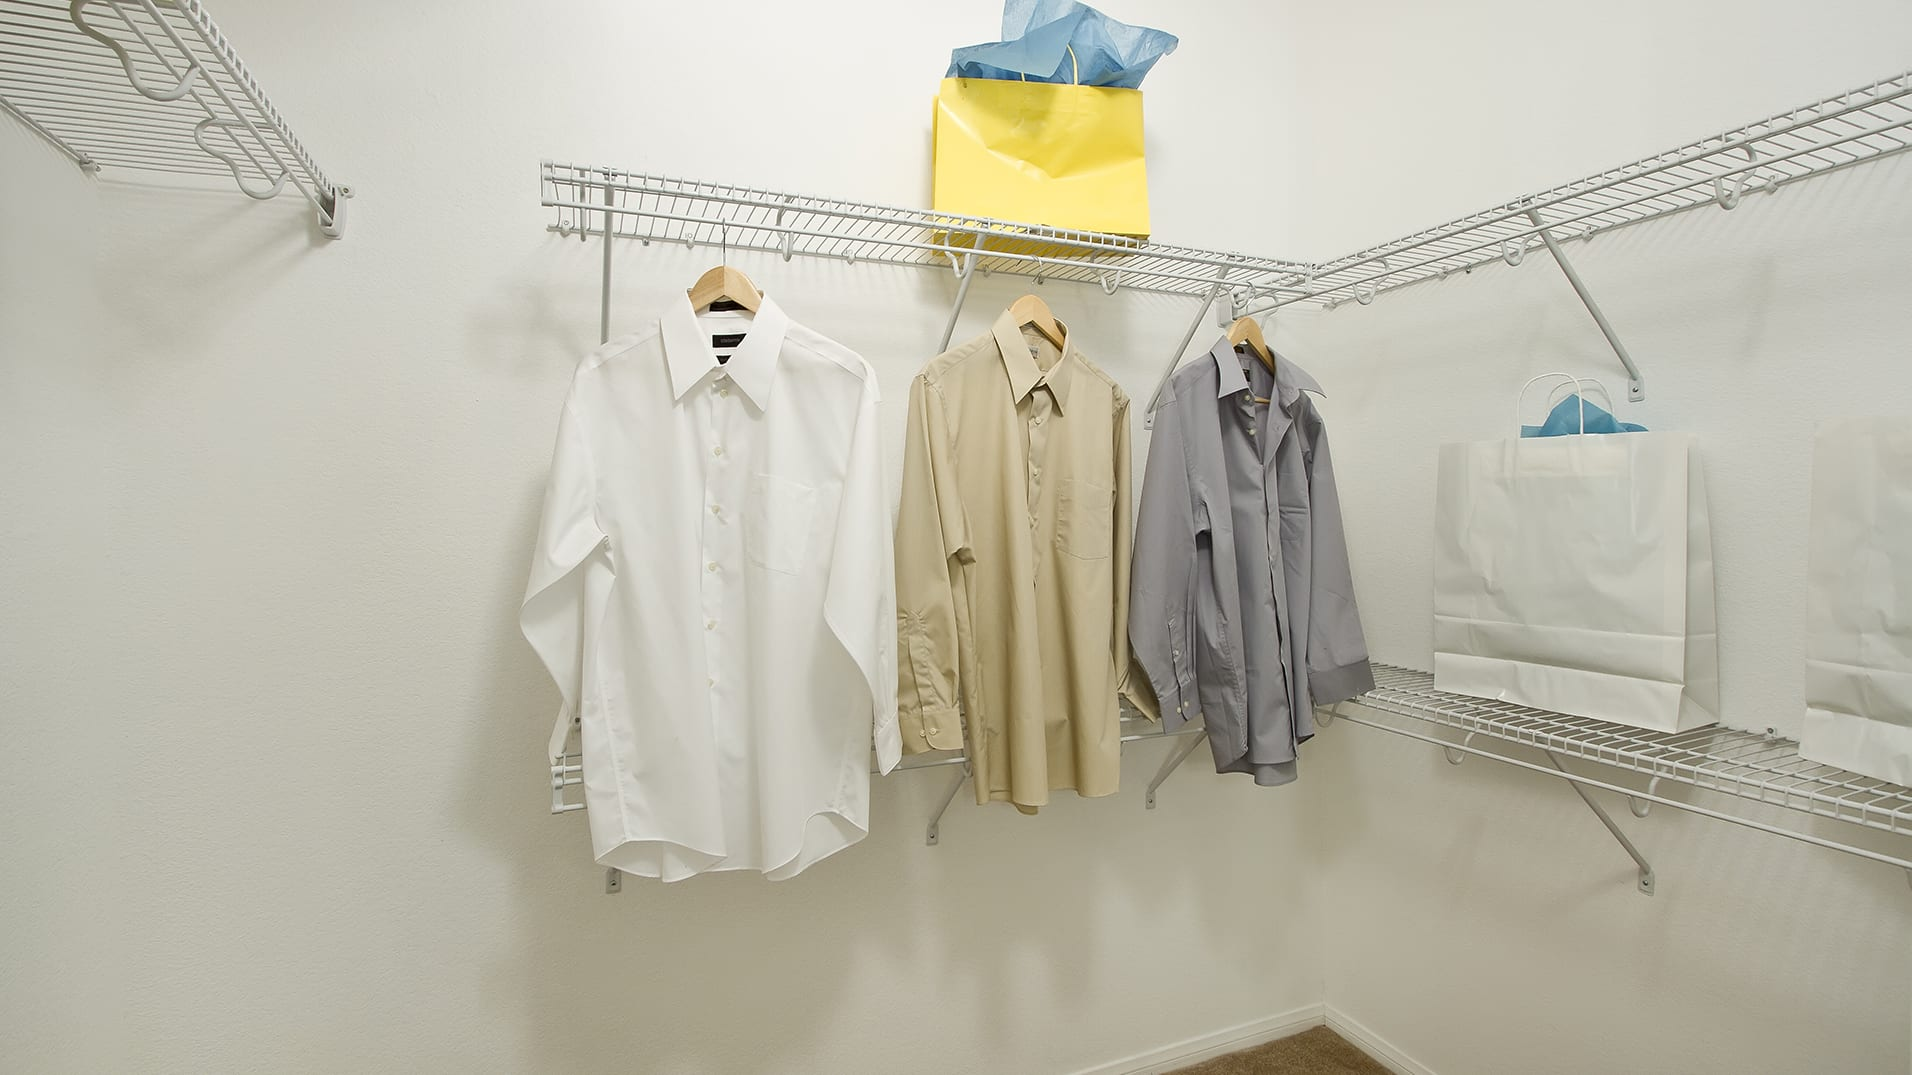 A spacious closets with a selection of shirts and shevles supporting shopping bags.